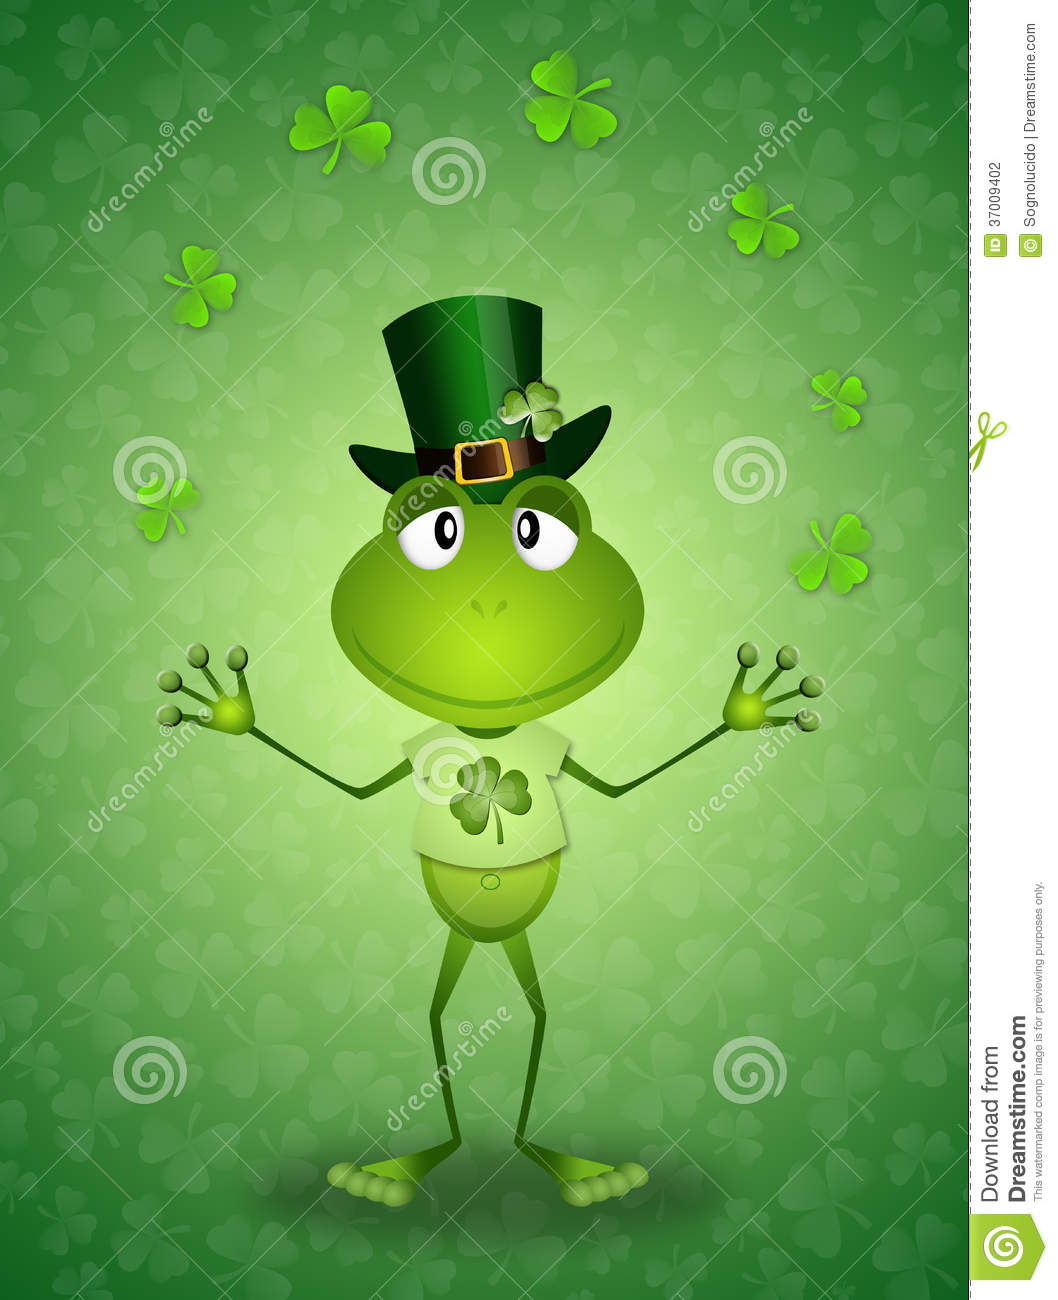 Green Frog In St.Patrick's Day Stock Photography - Image: 37009402